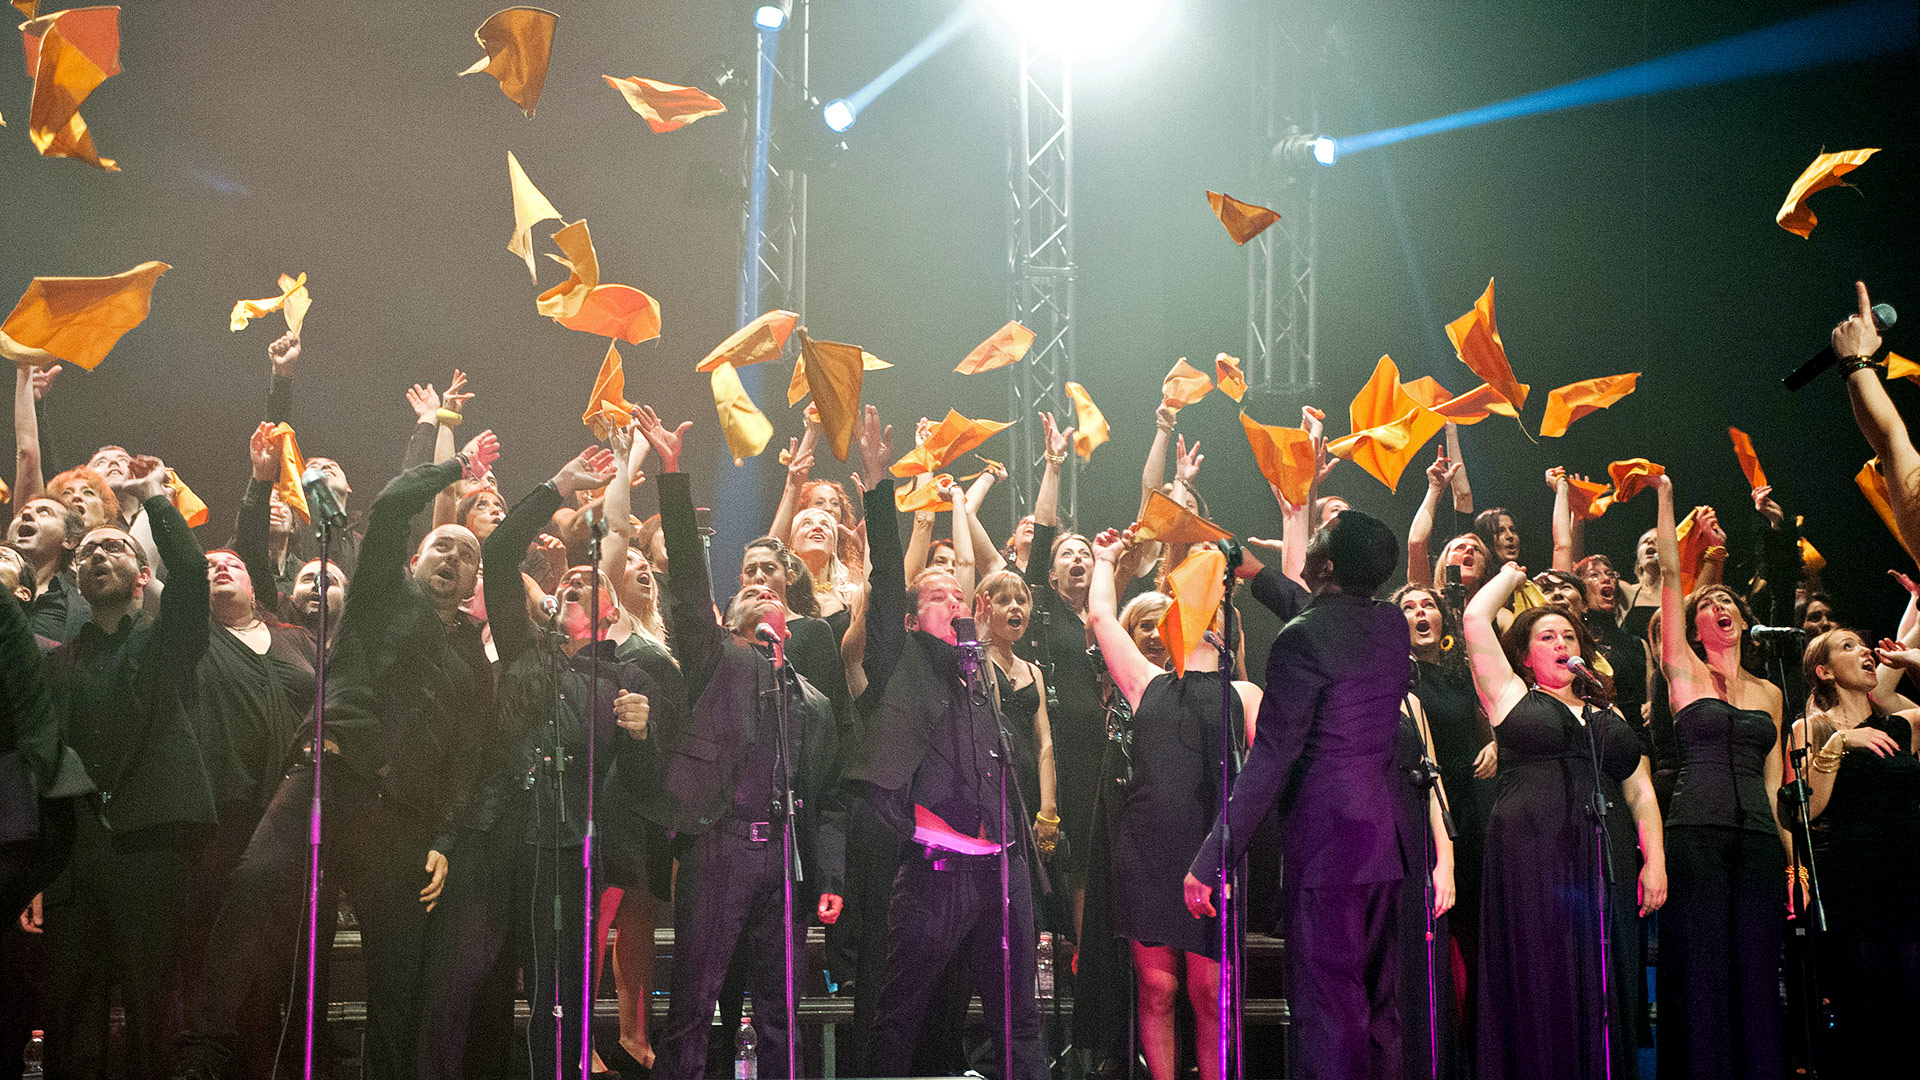 SGC_Sunshine_Gospel_Choir_Alex_Negro_046.jpg